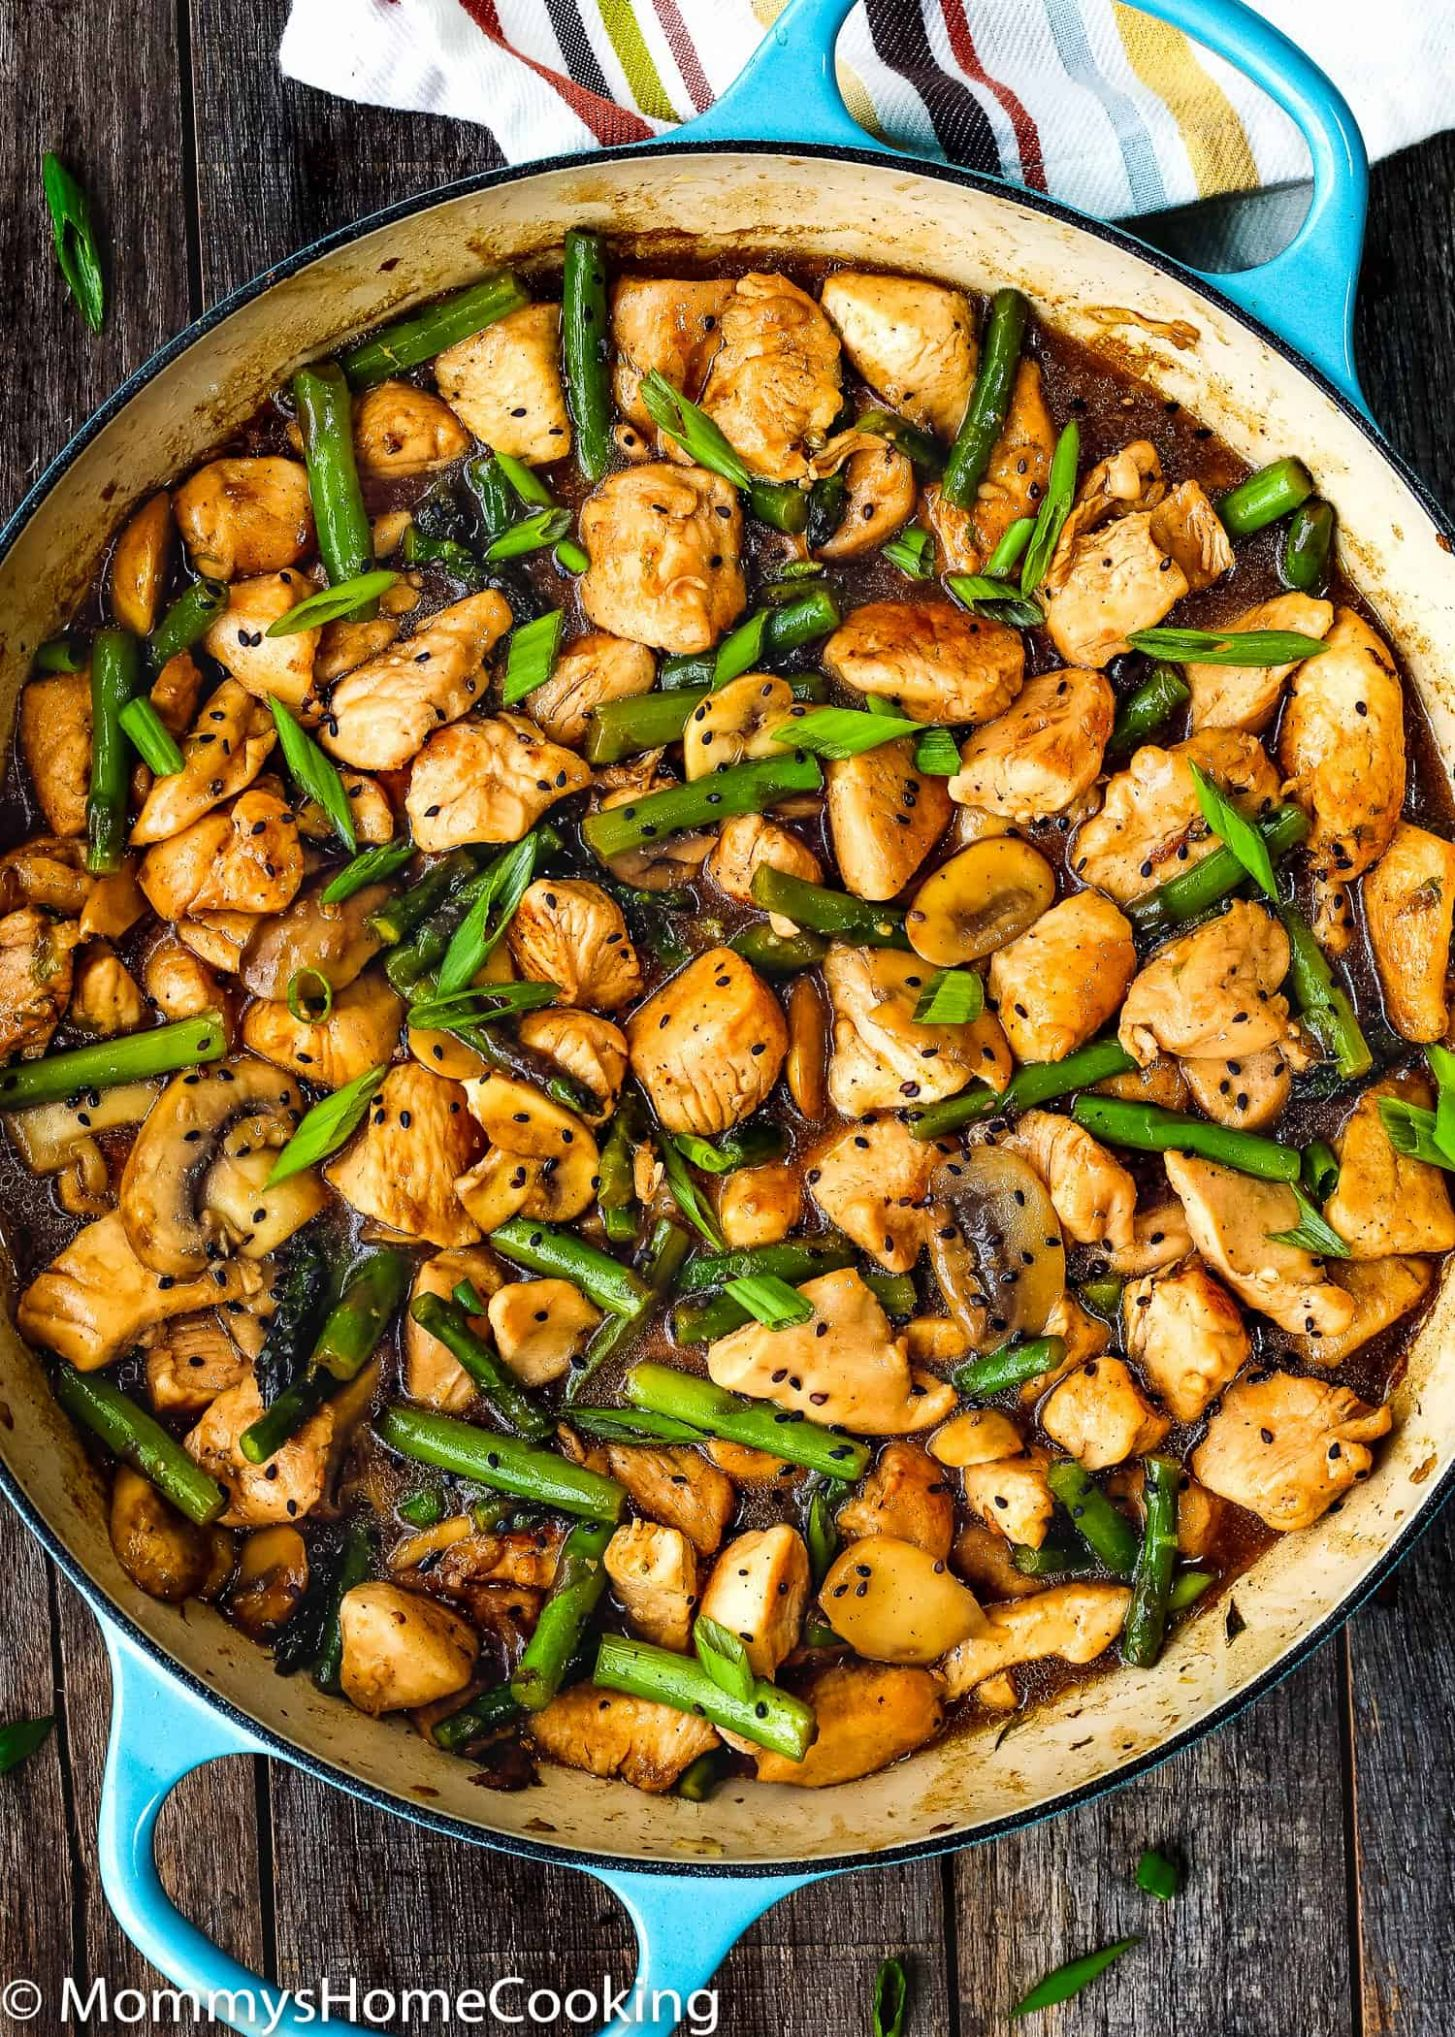 Easy Healthy Chicken and Asparagus Skillet - Recipes Chicken Easy